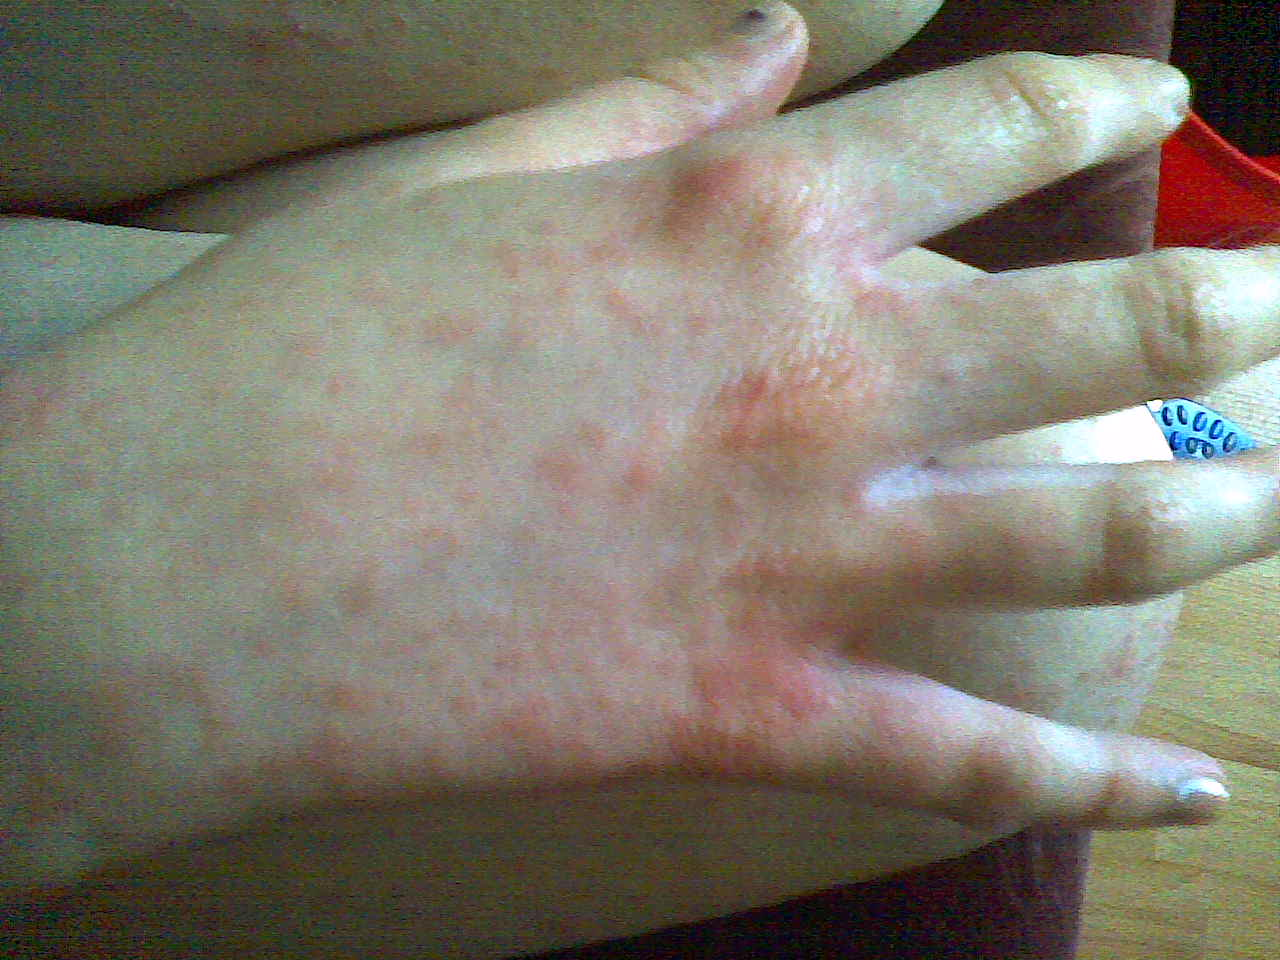 rash back of hand